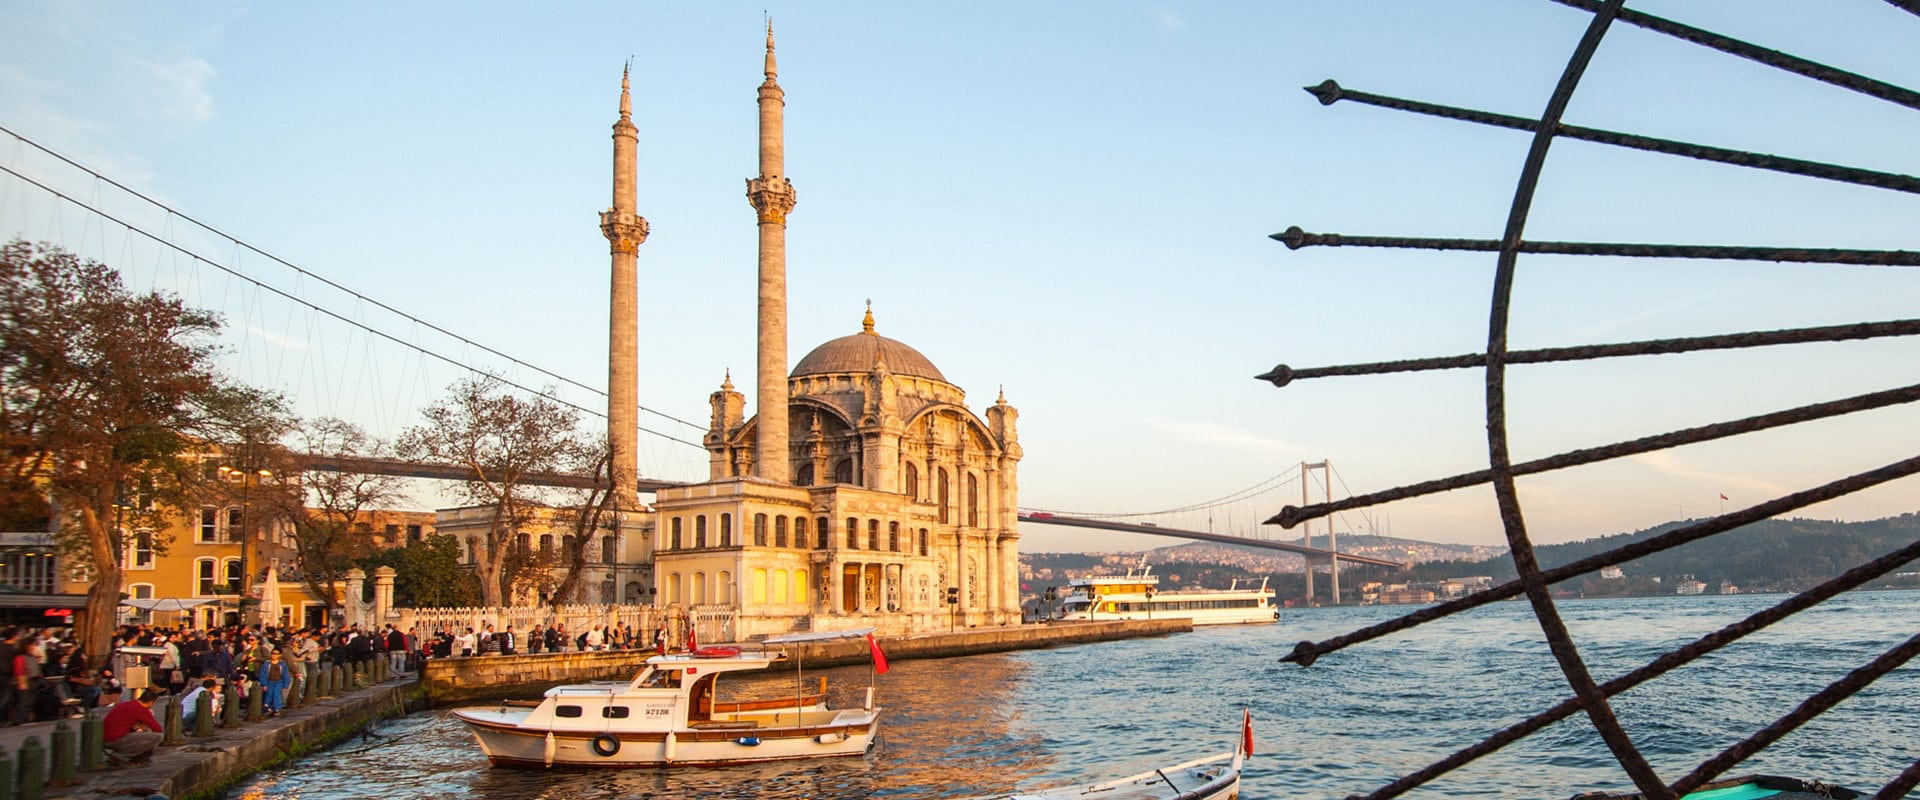 The Grantourismo Travels Guide to Istanbul, Turkey. Copyright © 2017 Terence Carter / Grantourismo. All Rights Reserved.